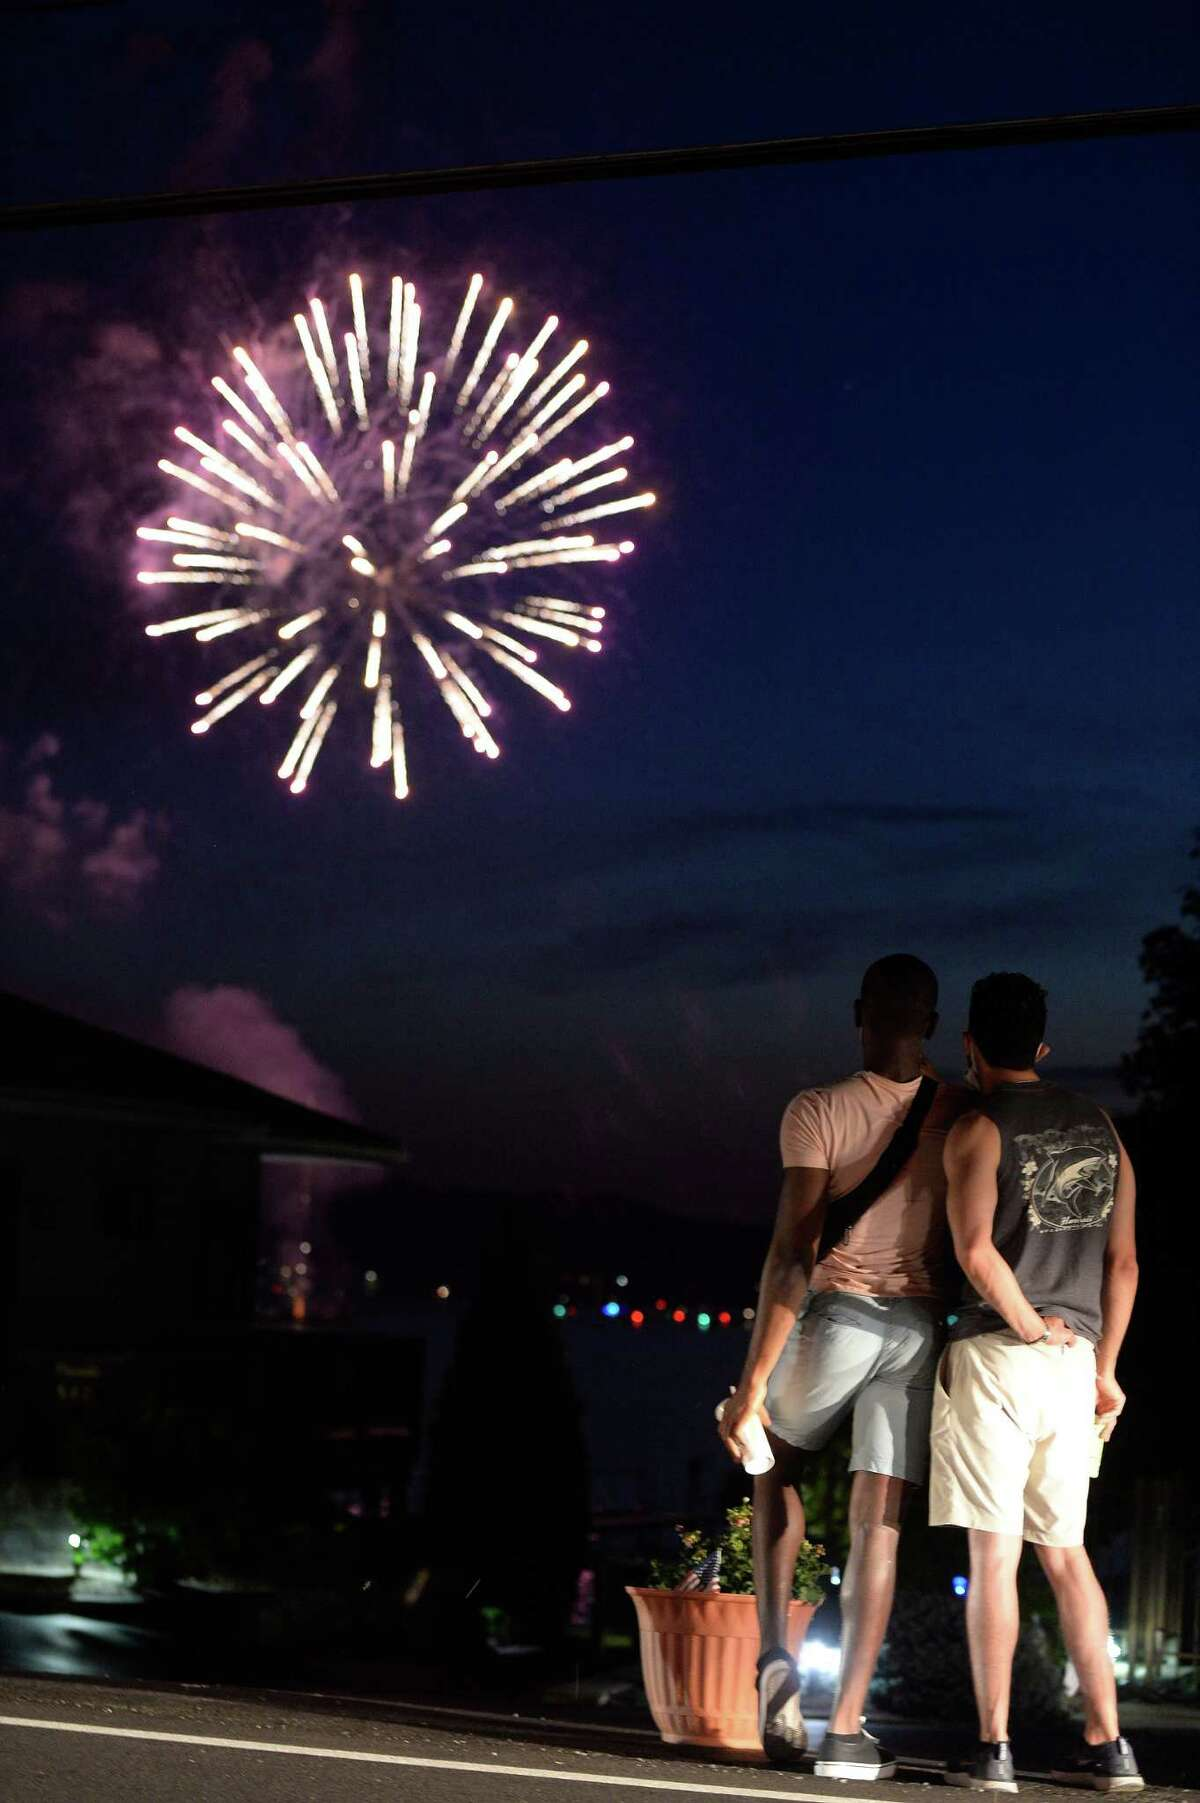 Independence Day fireworks are observed over Saratoga Lake in Saratoga Springs, N.Y., Saturday, Jul. 4, 2020.